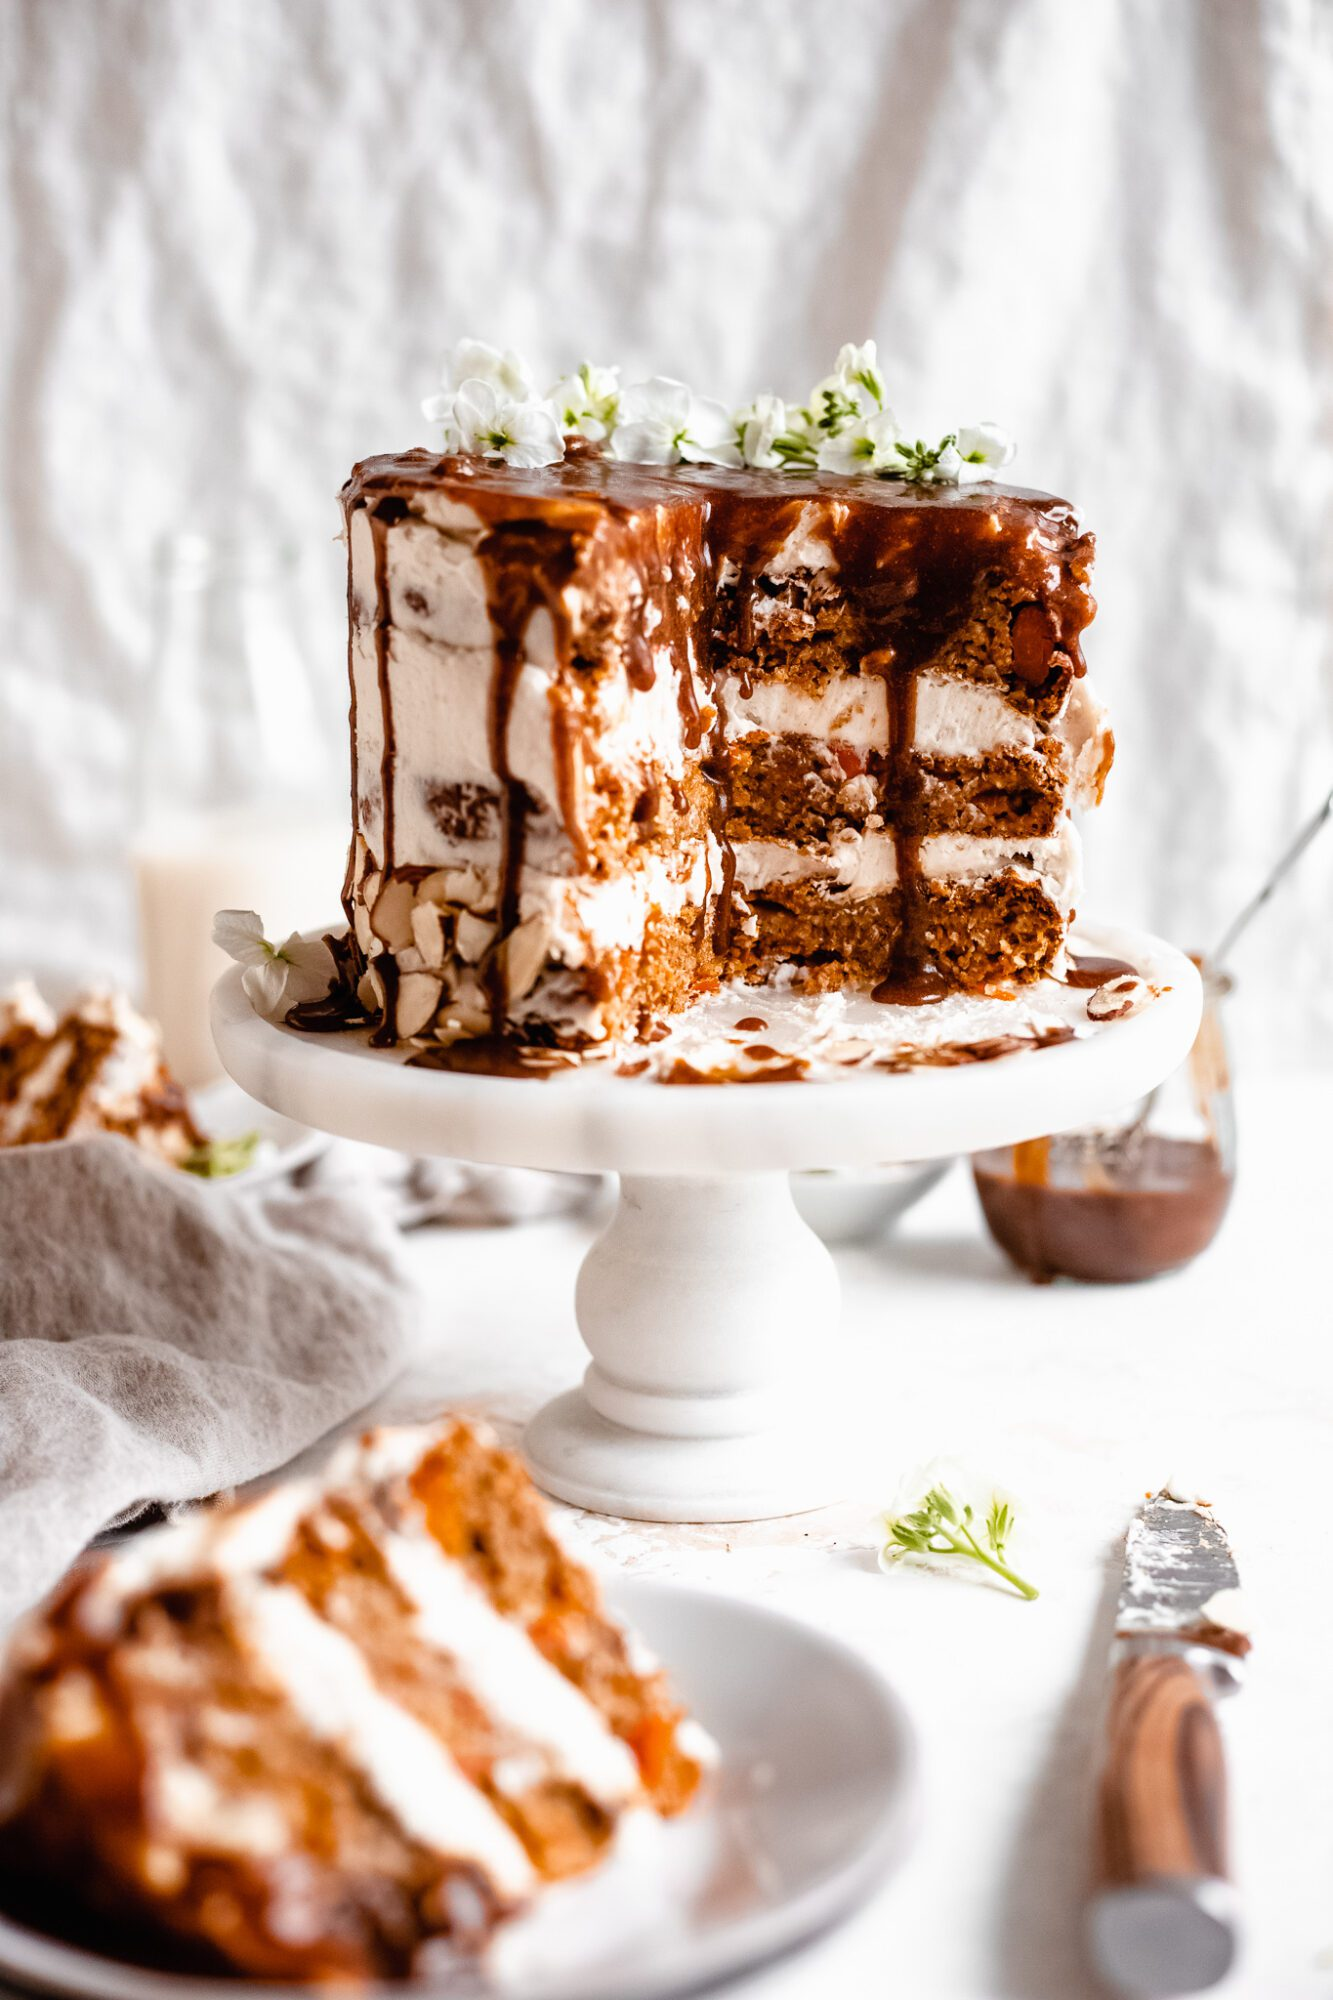 gooey carrot cake with caramel drizzle on cake stand